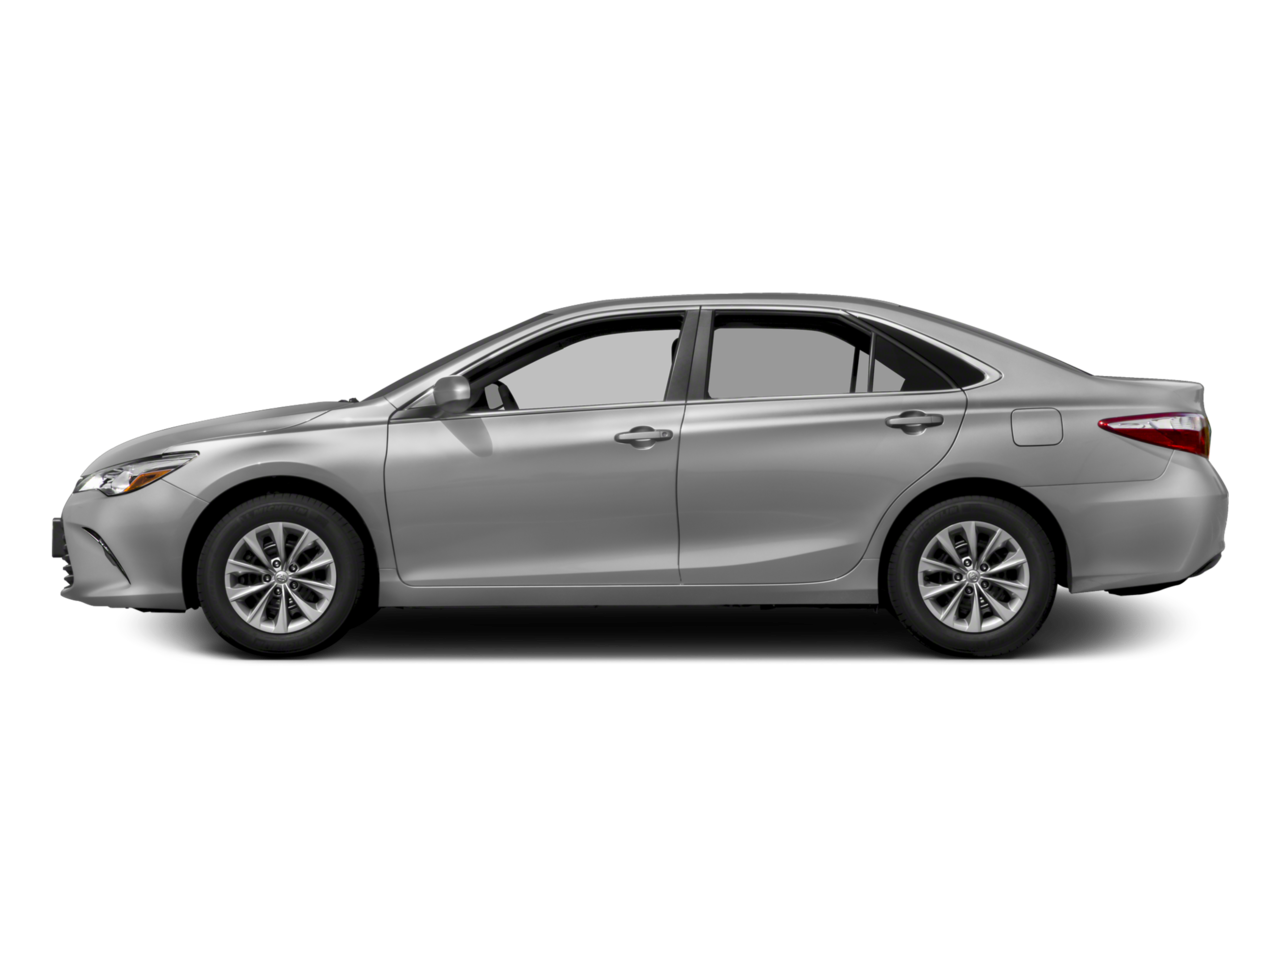 2017 Toyota Camry at Krause Toyota Near Allentown PA